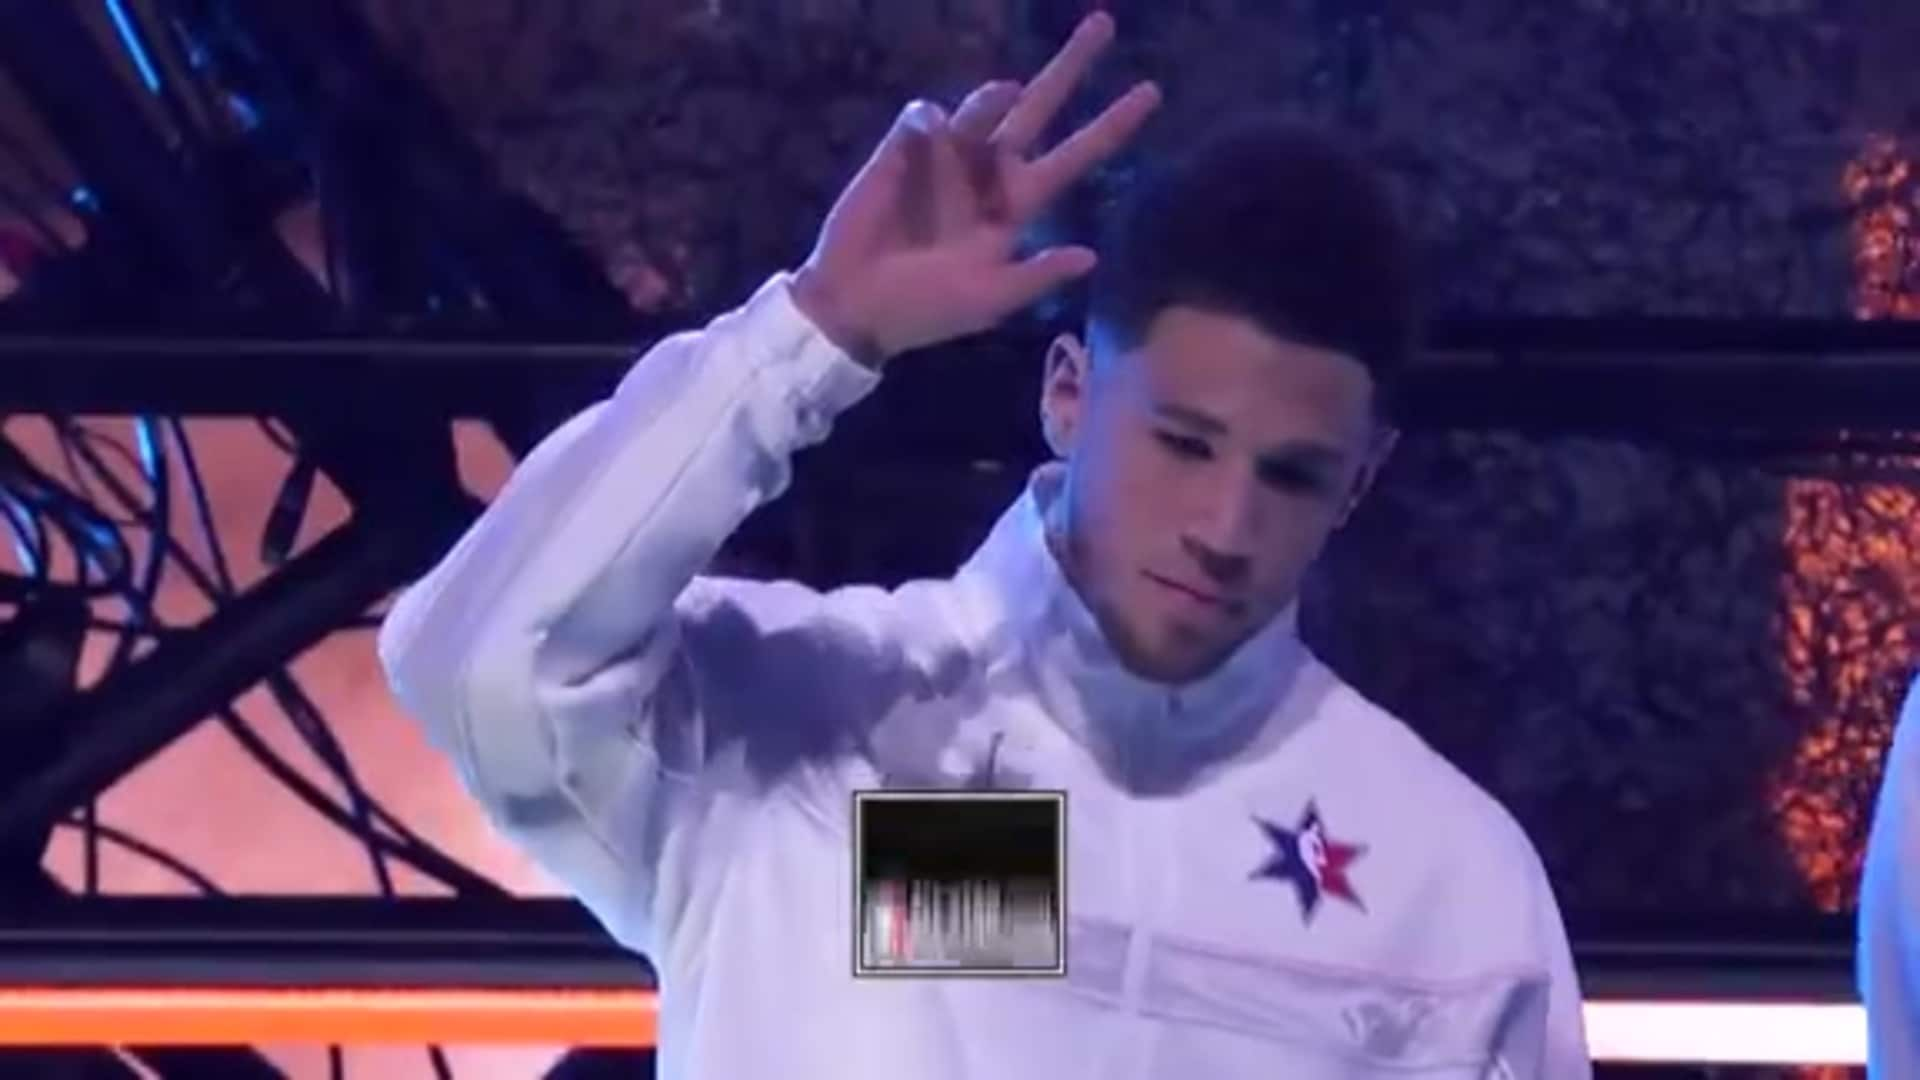 2020 NBA All-Star Game: Devin Booker Introduction